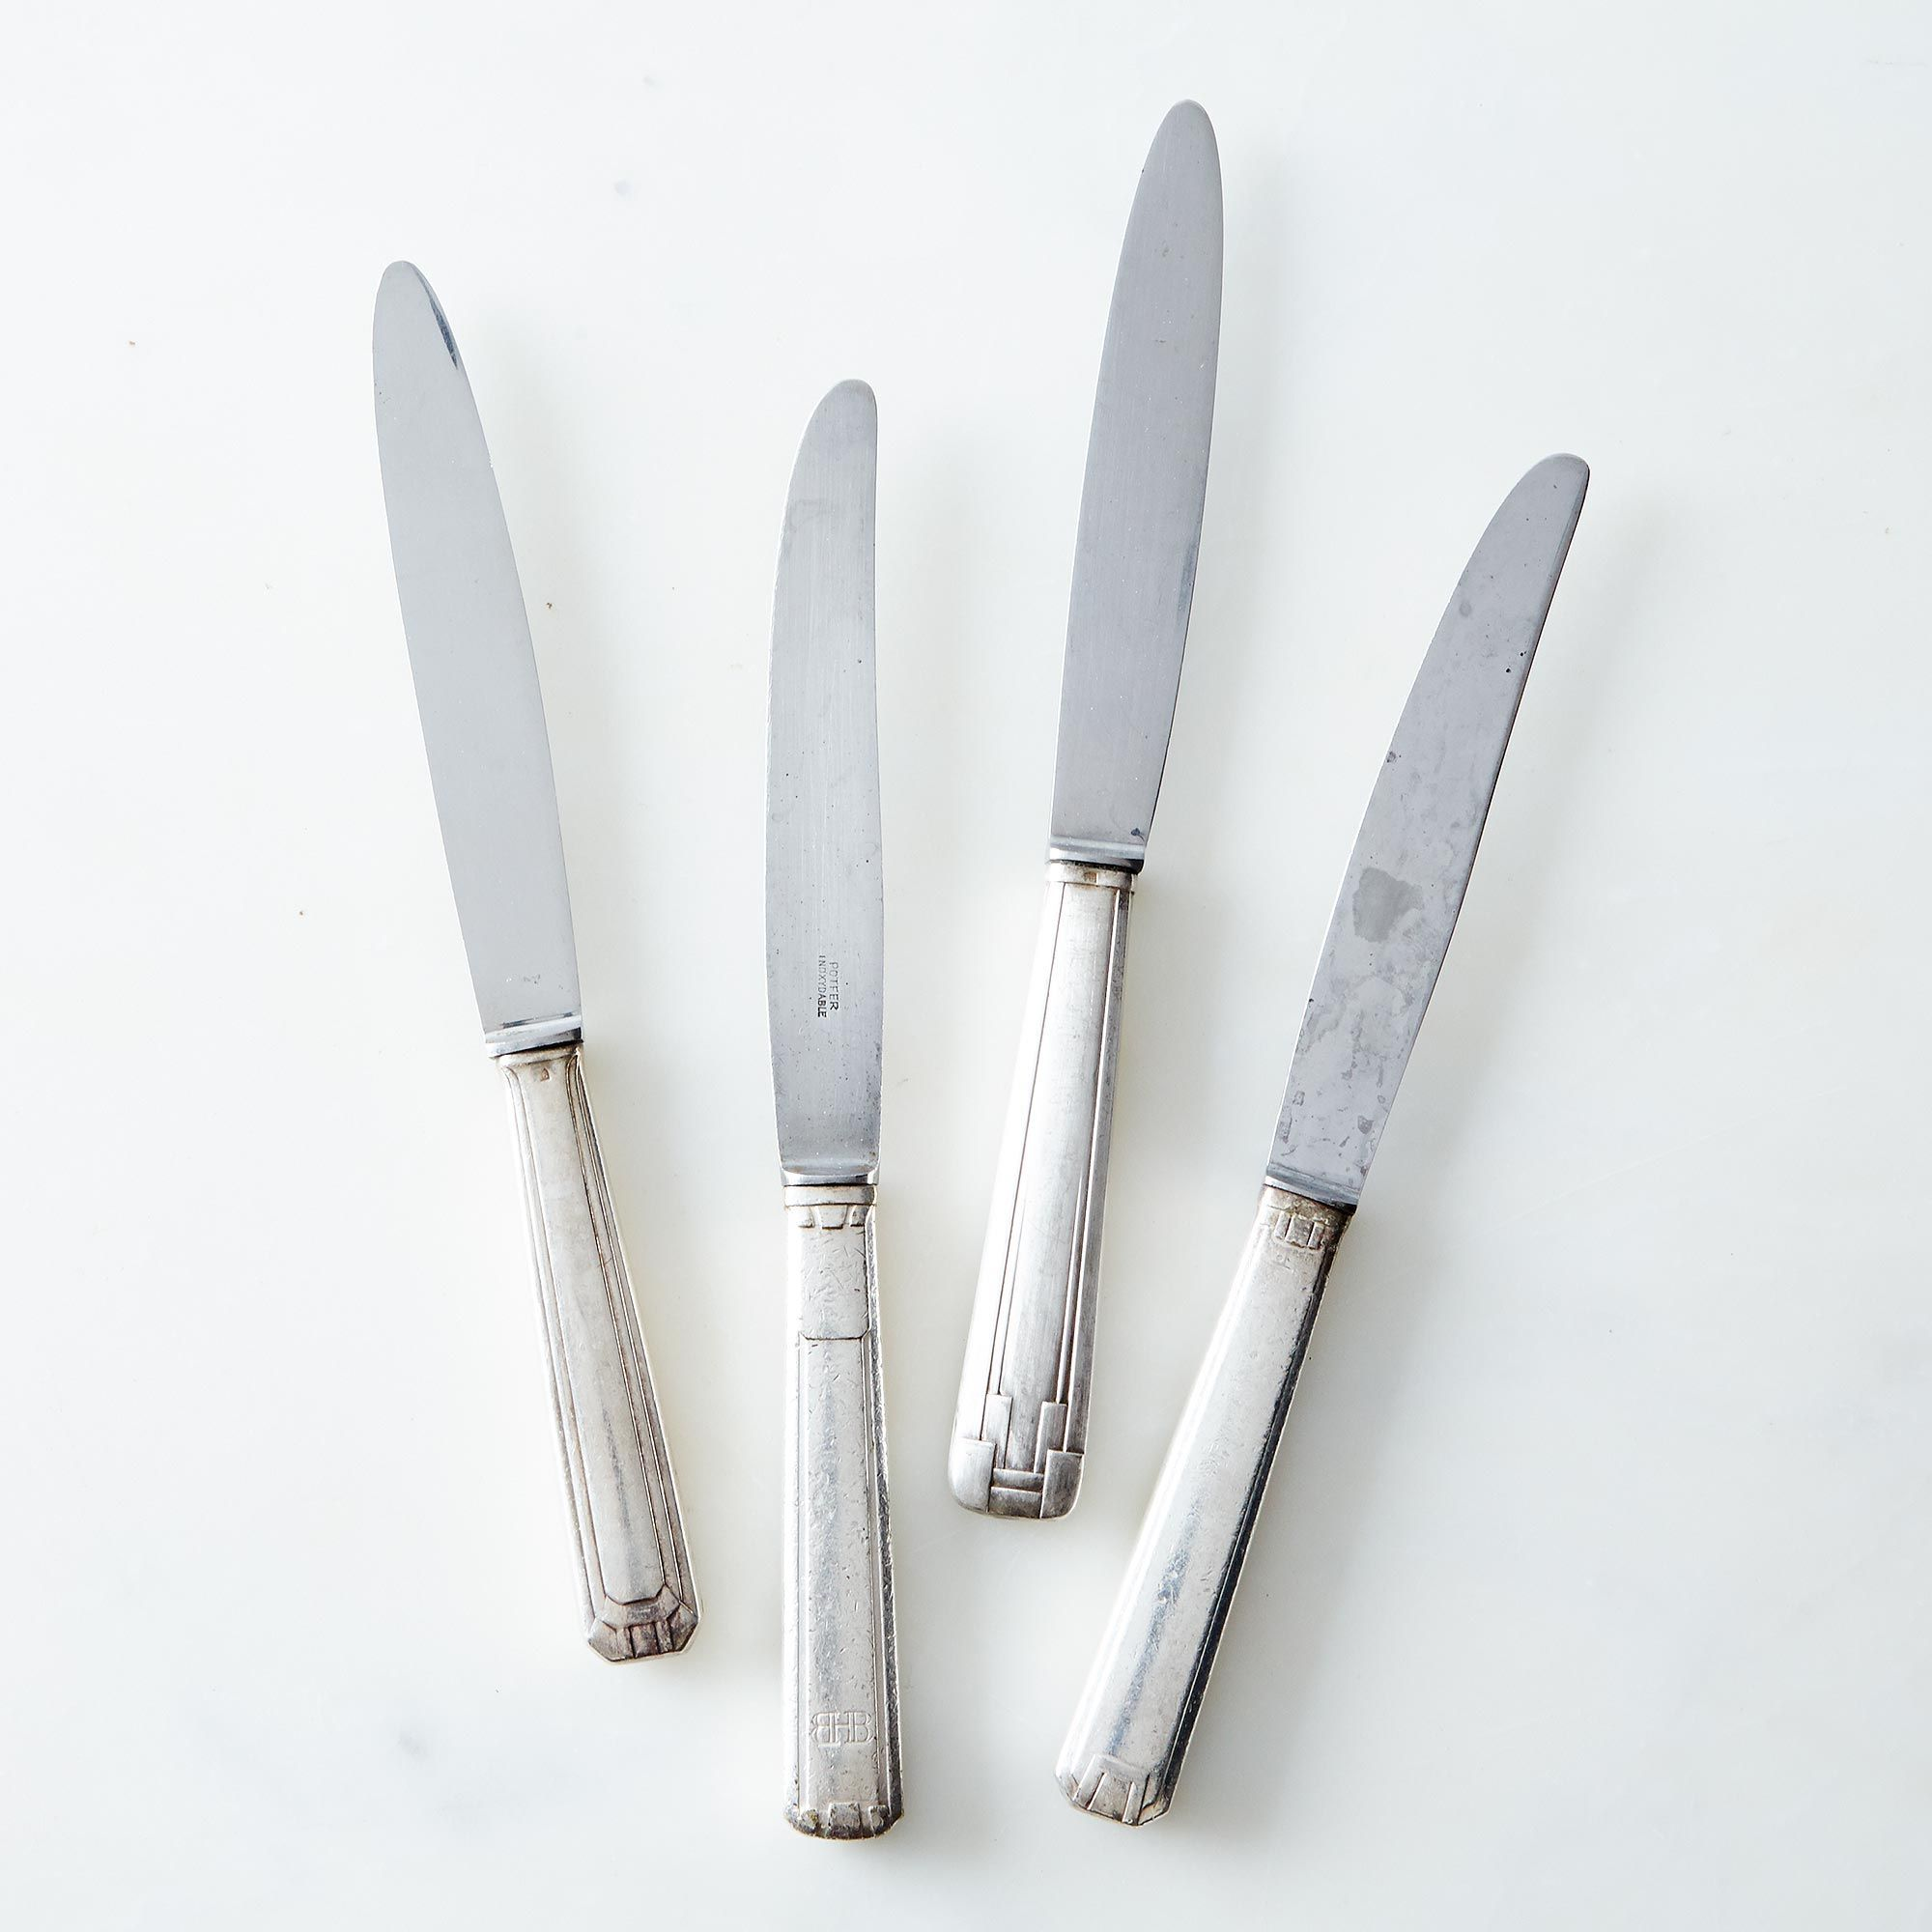 40a404f6 a0f7 11e5 a190 0ef7535729df  2014 1029 elsie green vintage french flatware knives 010